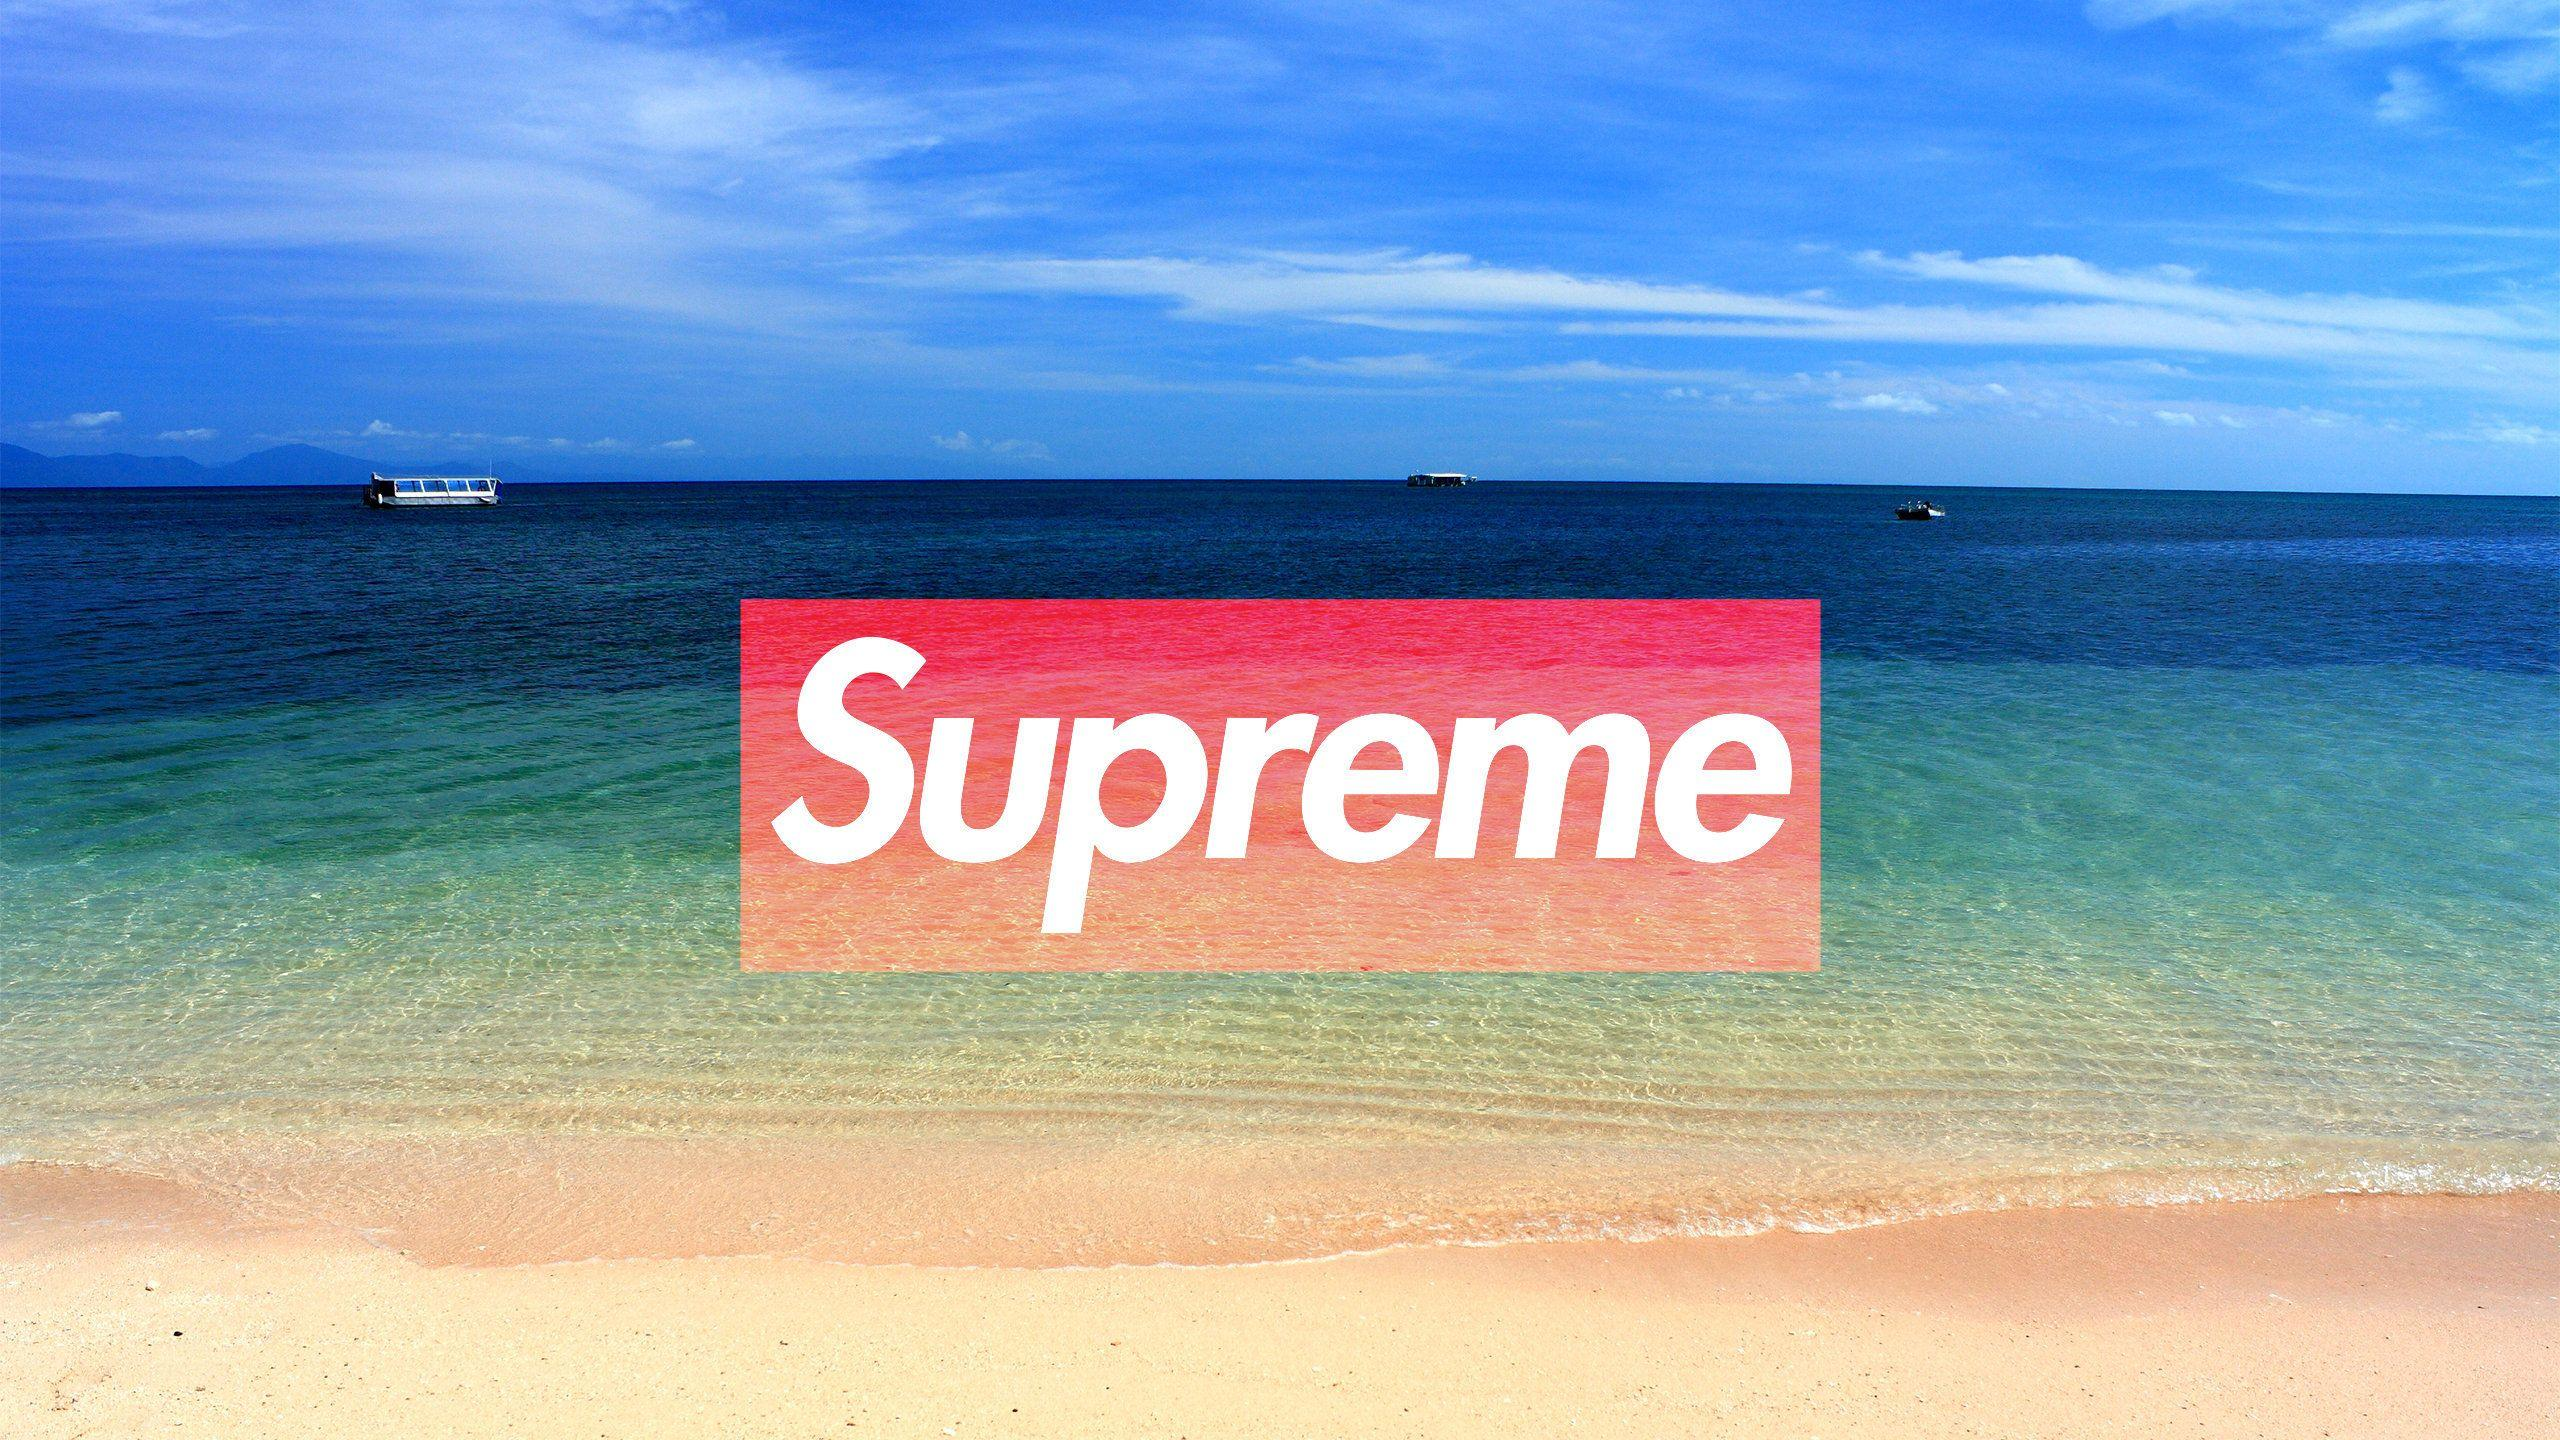 Supreme Laptop Wallpapers   Top Supreme Laptop Backgrounds 2560x1440